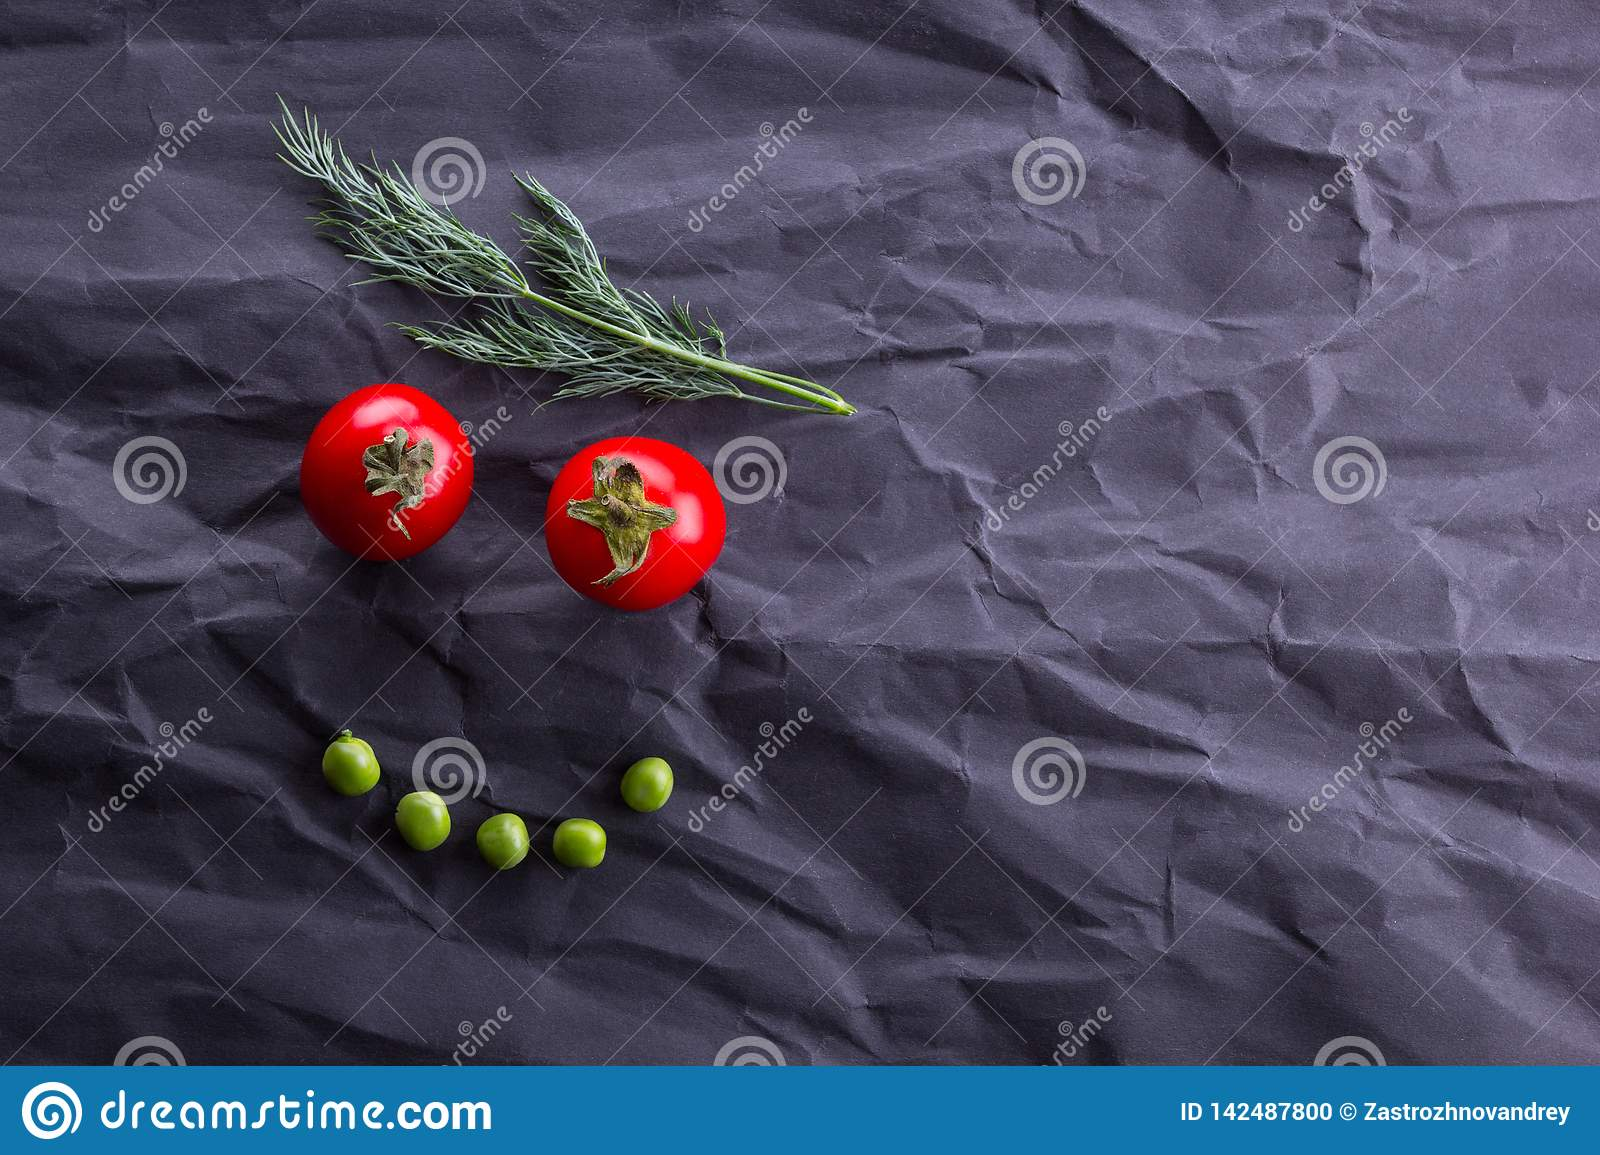 Smiling face from vegetables on black paper background